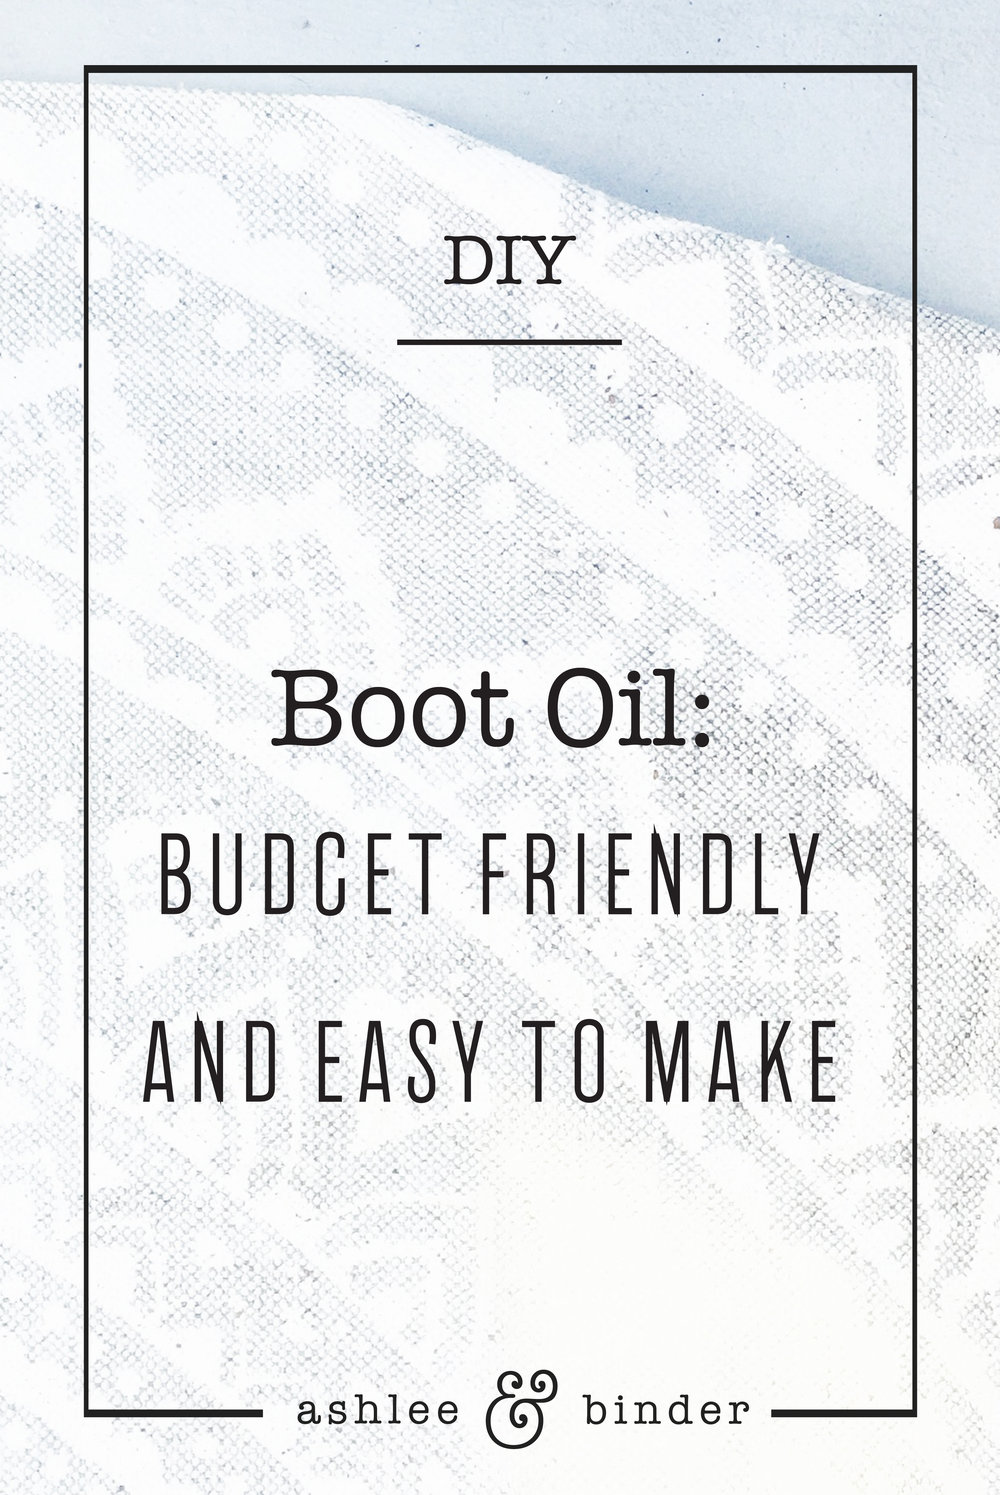 DIY Boot Oil